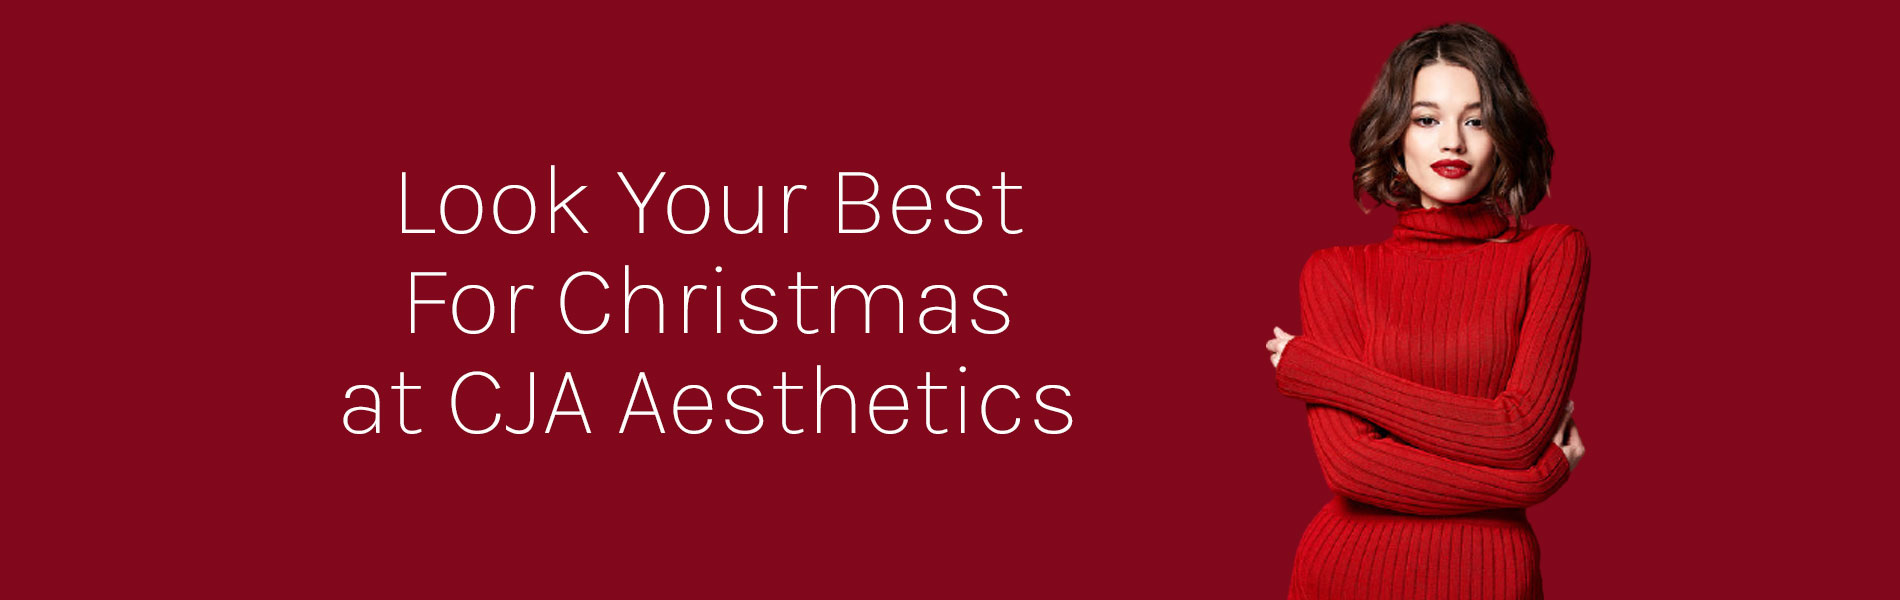 Look Your Best For Christmas at CJA Aesthetics